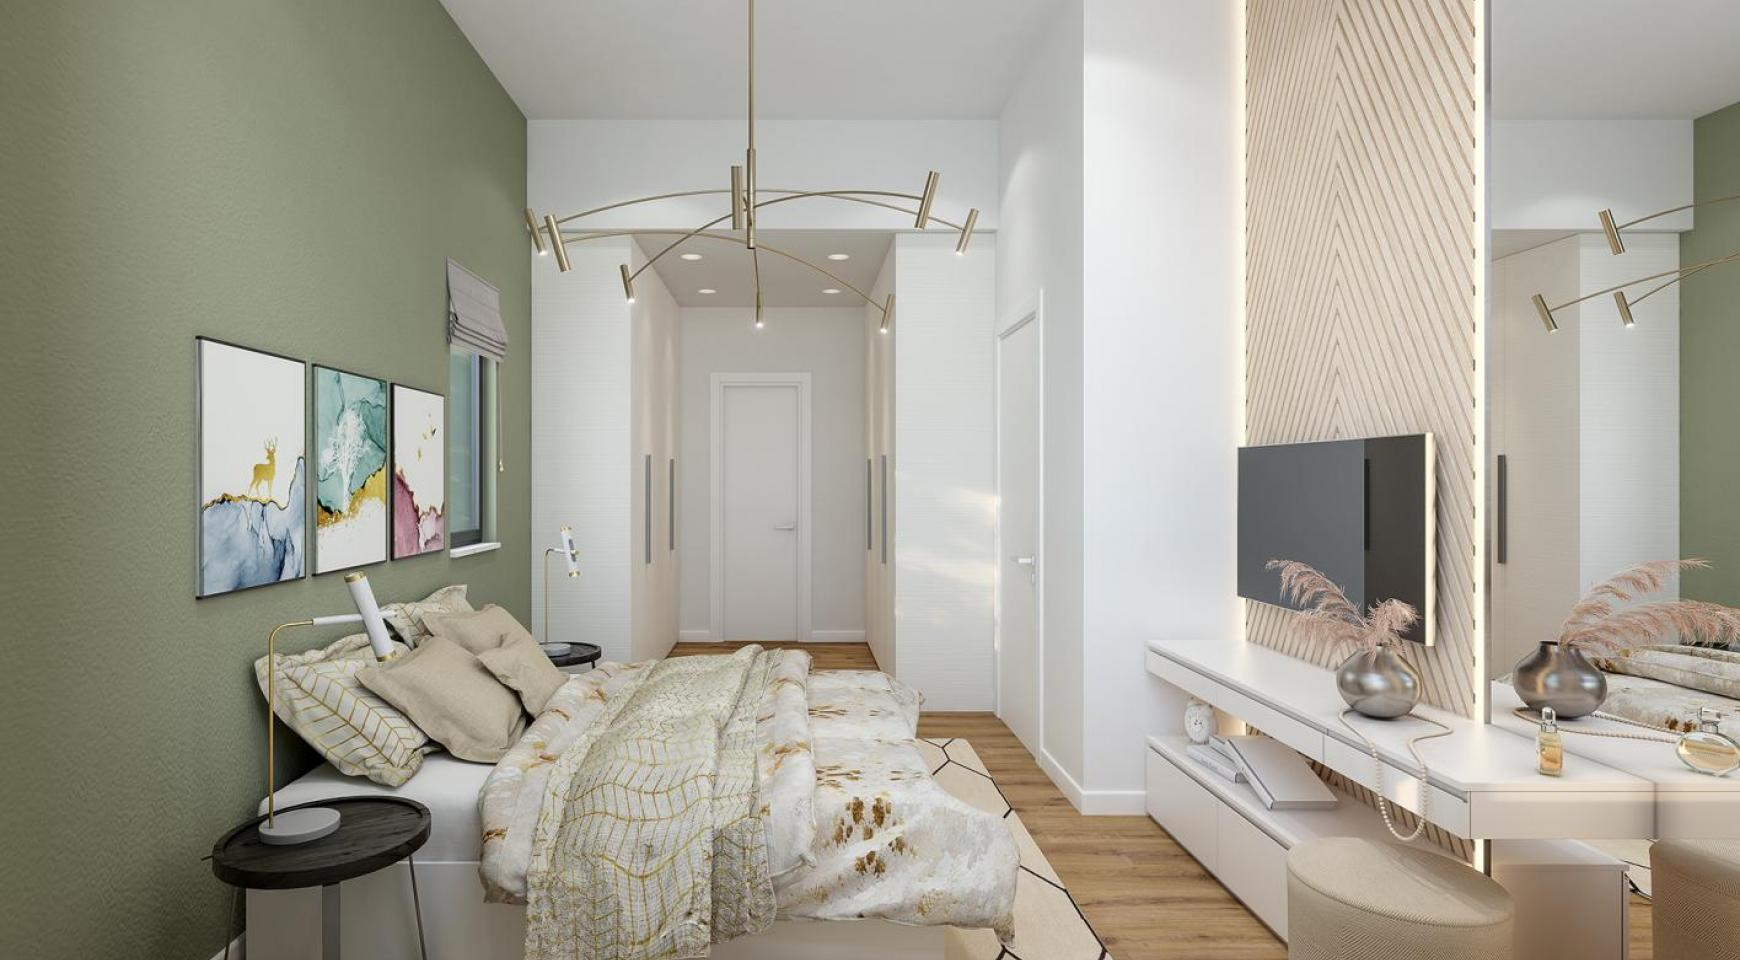 Urban City Residences, Block B. New Spacious 2 Bedroom Apartment 202 in the City Centre - 4